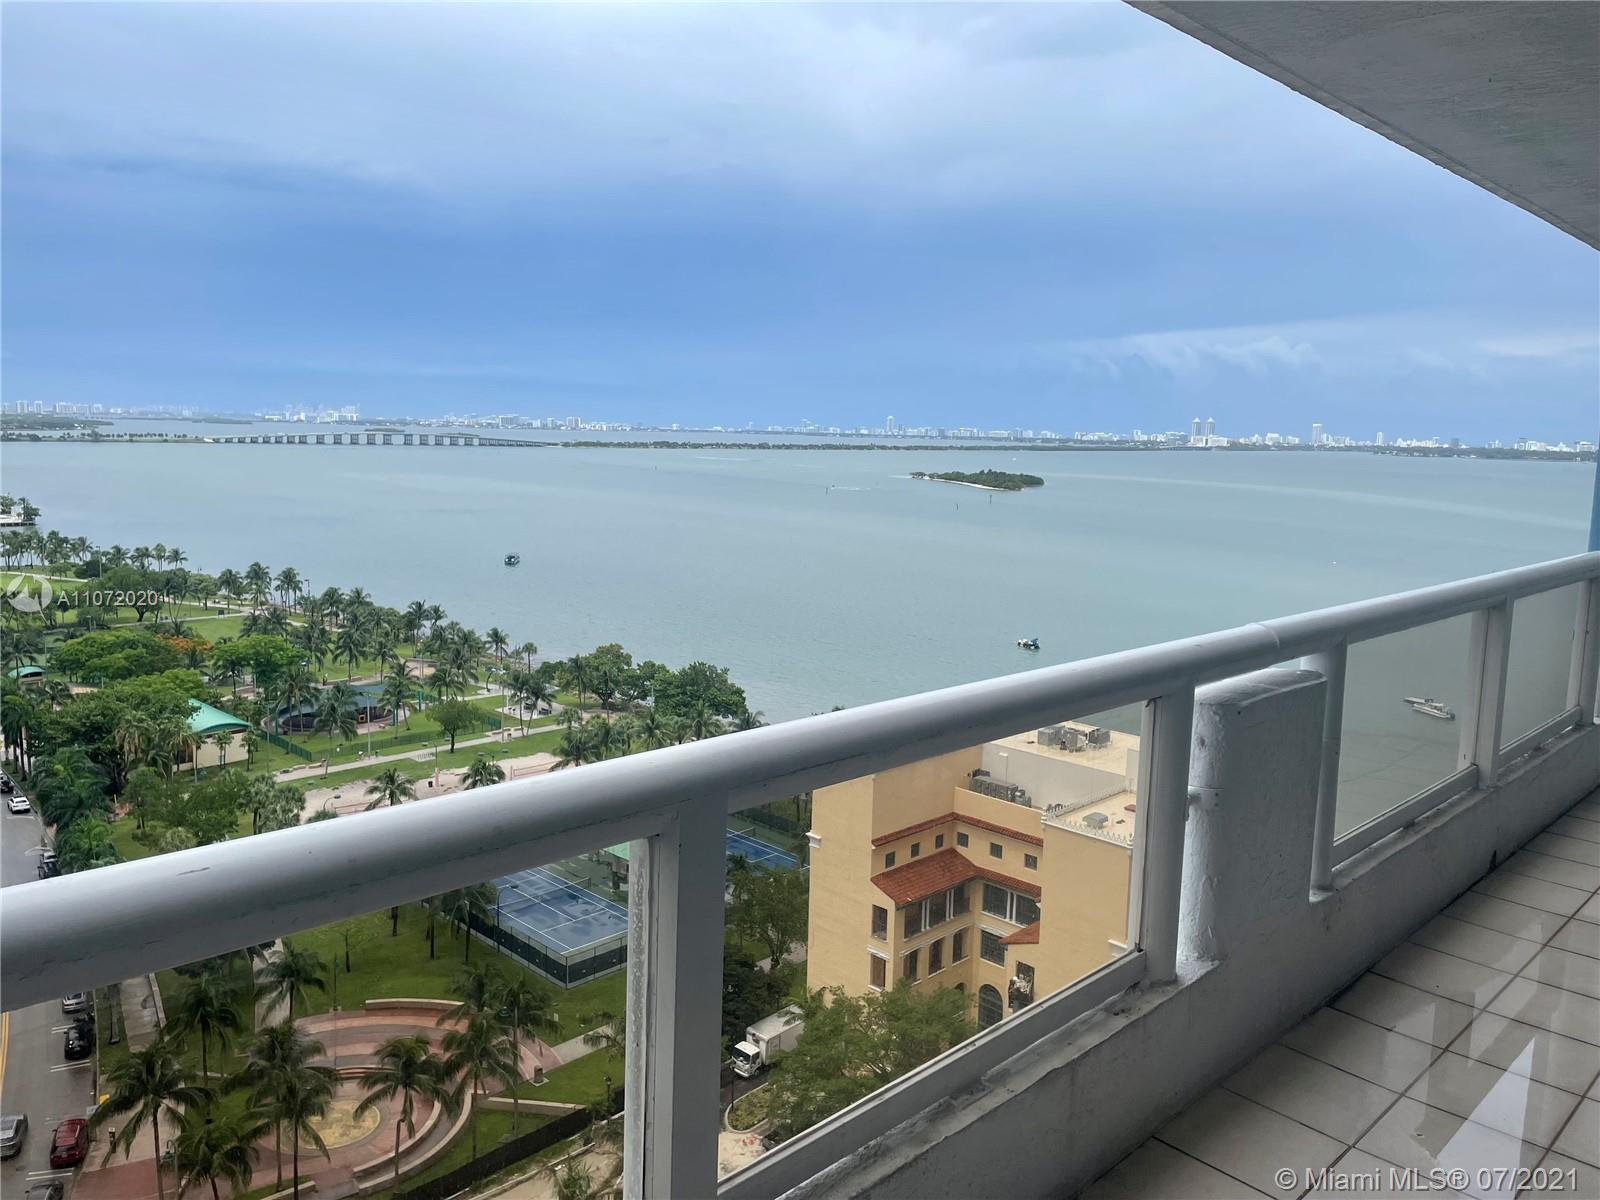 Renovated 1 Bedroom 1.5 bath with views of Biscayne Bay. The condo has newly installed High Impact W